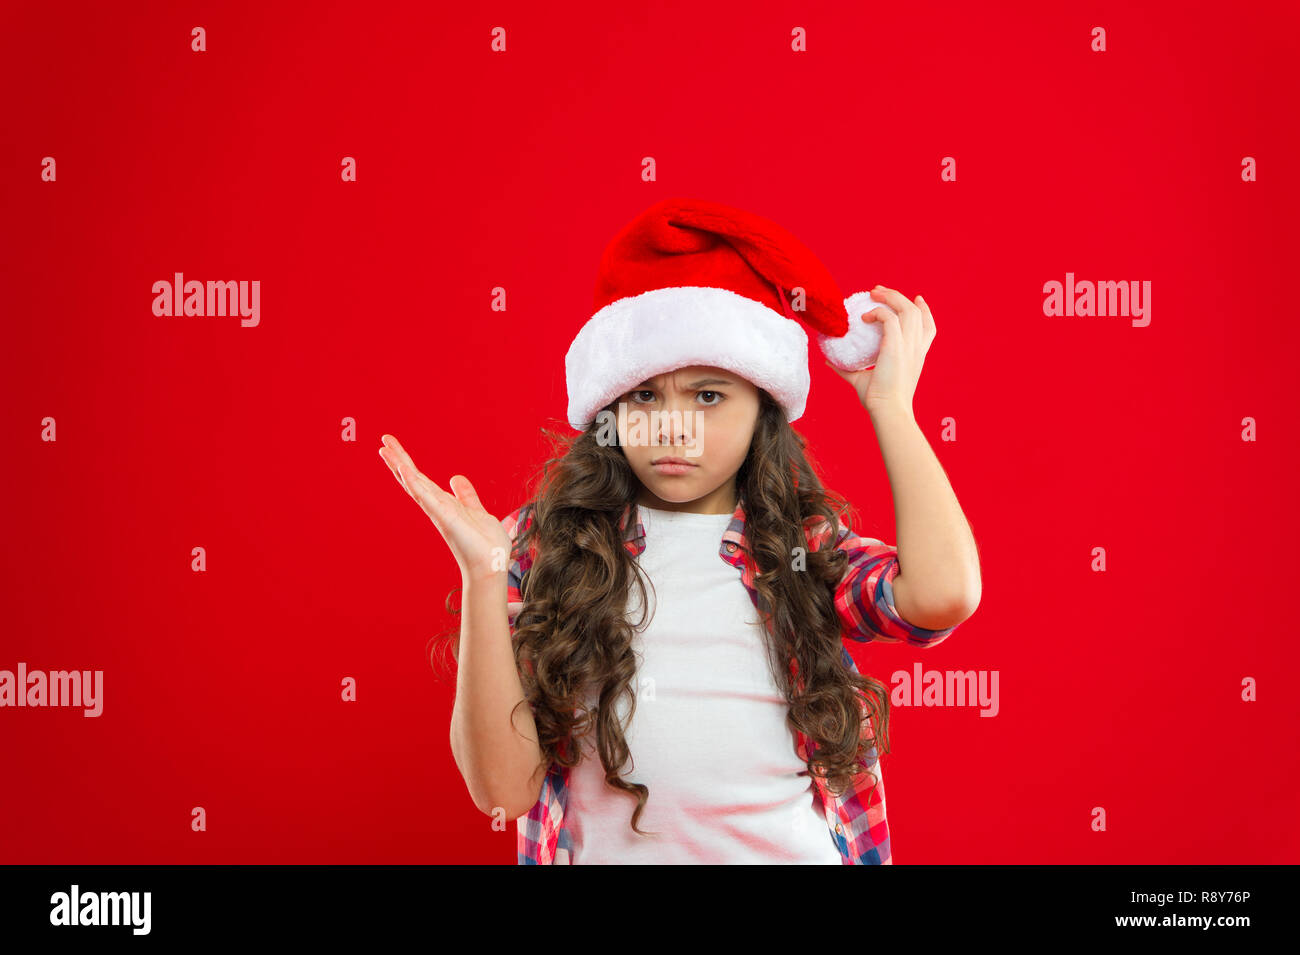 50632ec6aeab0 Little girl child in santa red hat. Christmas shopping. Present for Xmas.  Childhood. New year party. Santa claus kid. Happy winter holidays. Small  sad girl.